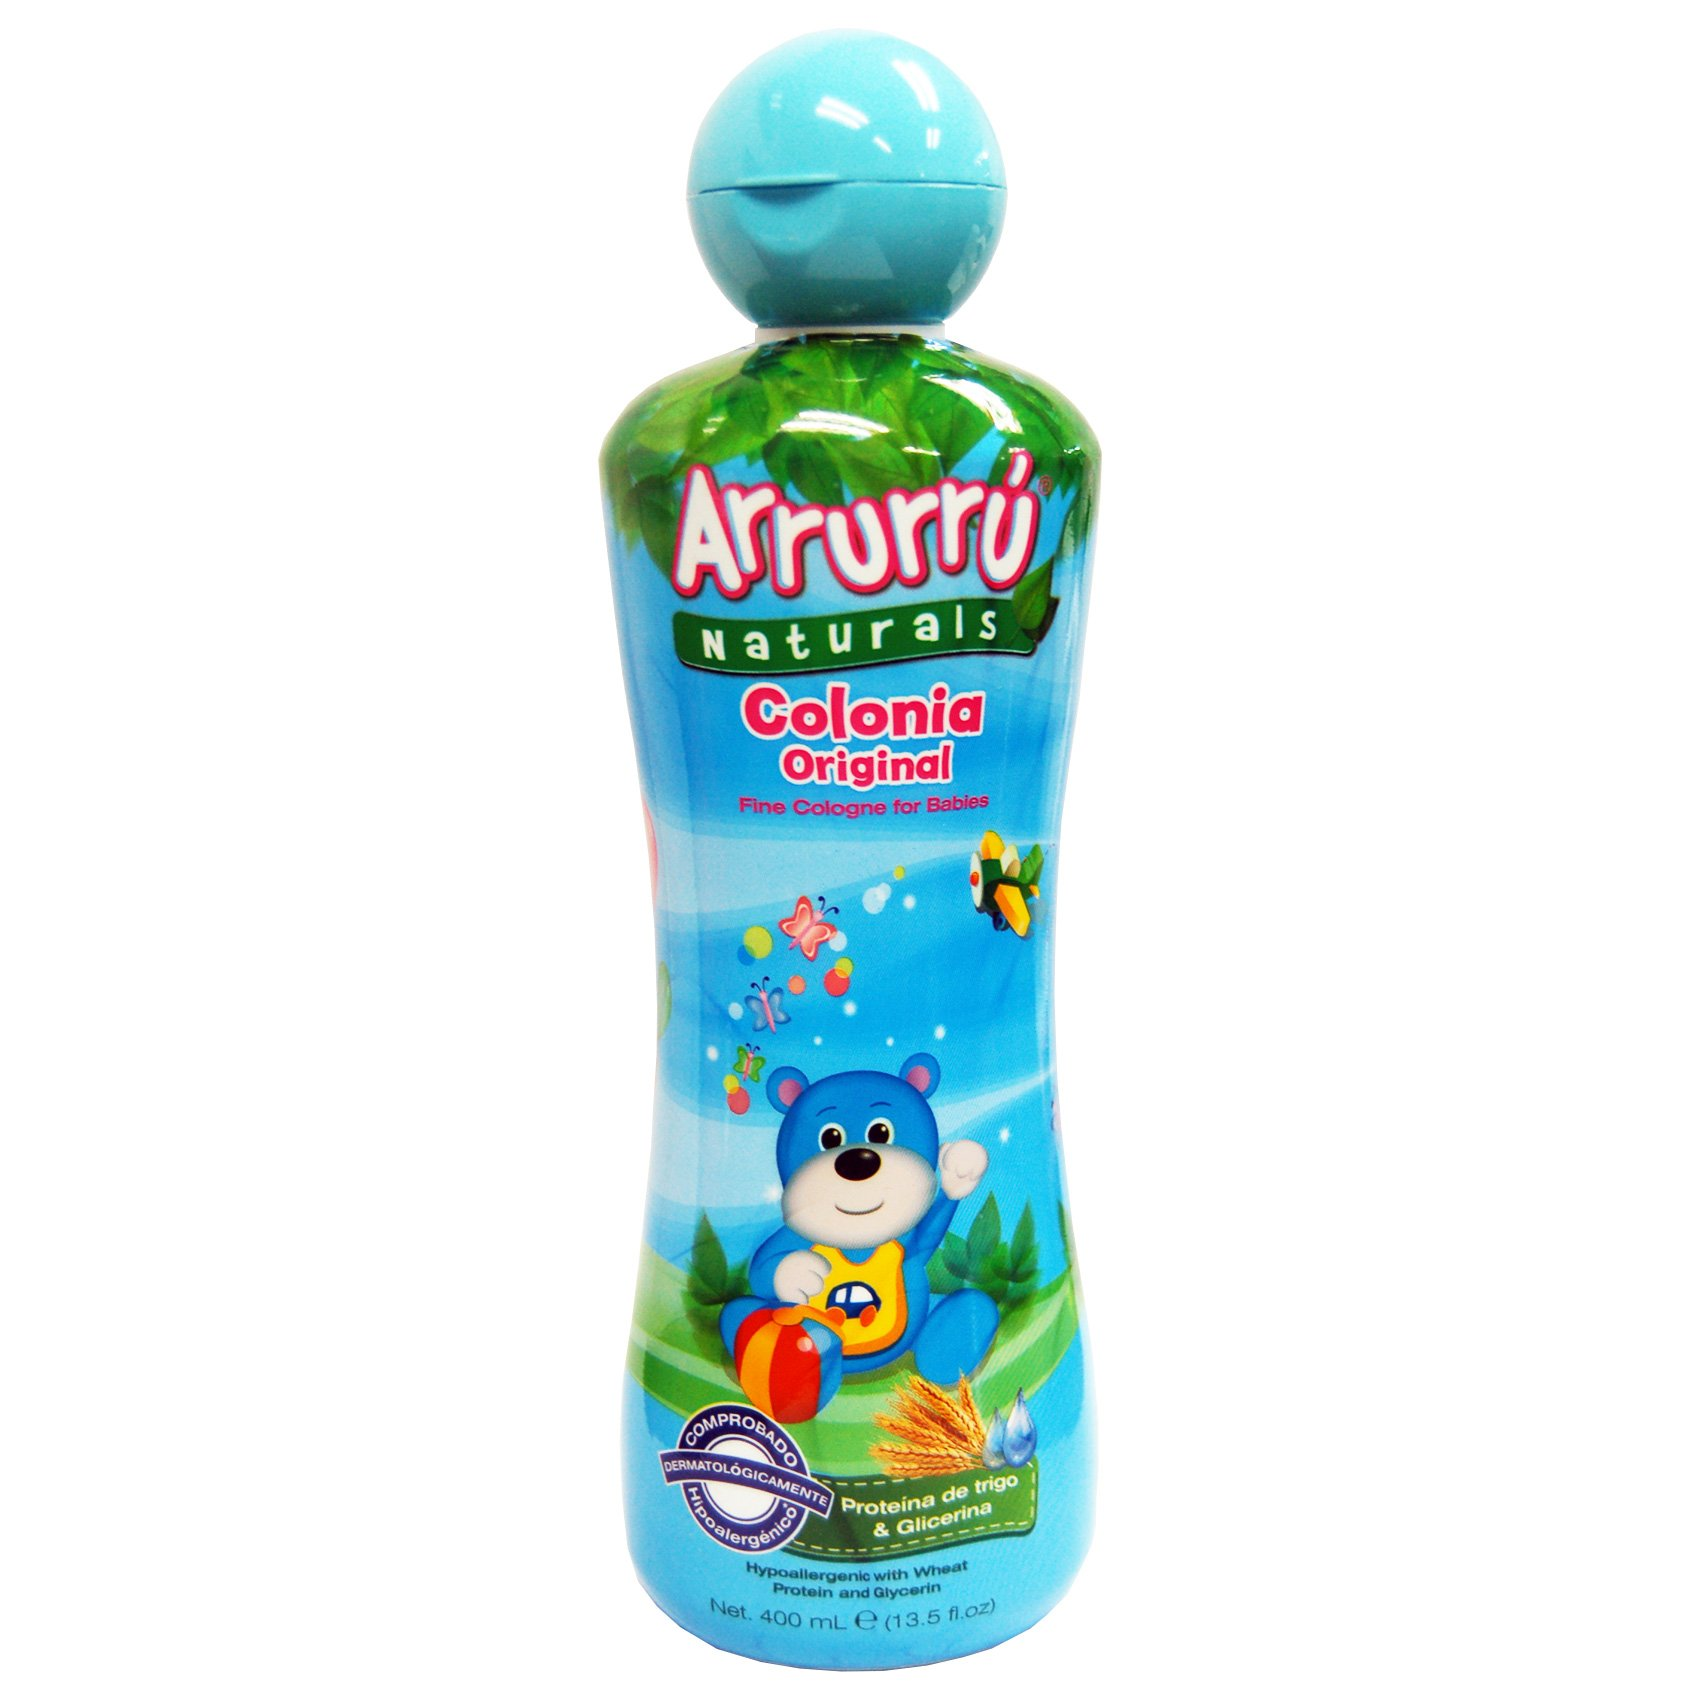 Arrurru Naturals Fine Cologne for Babies-Colonia Original-Boys